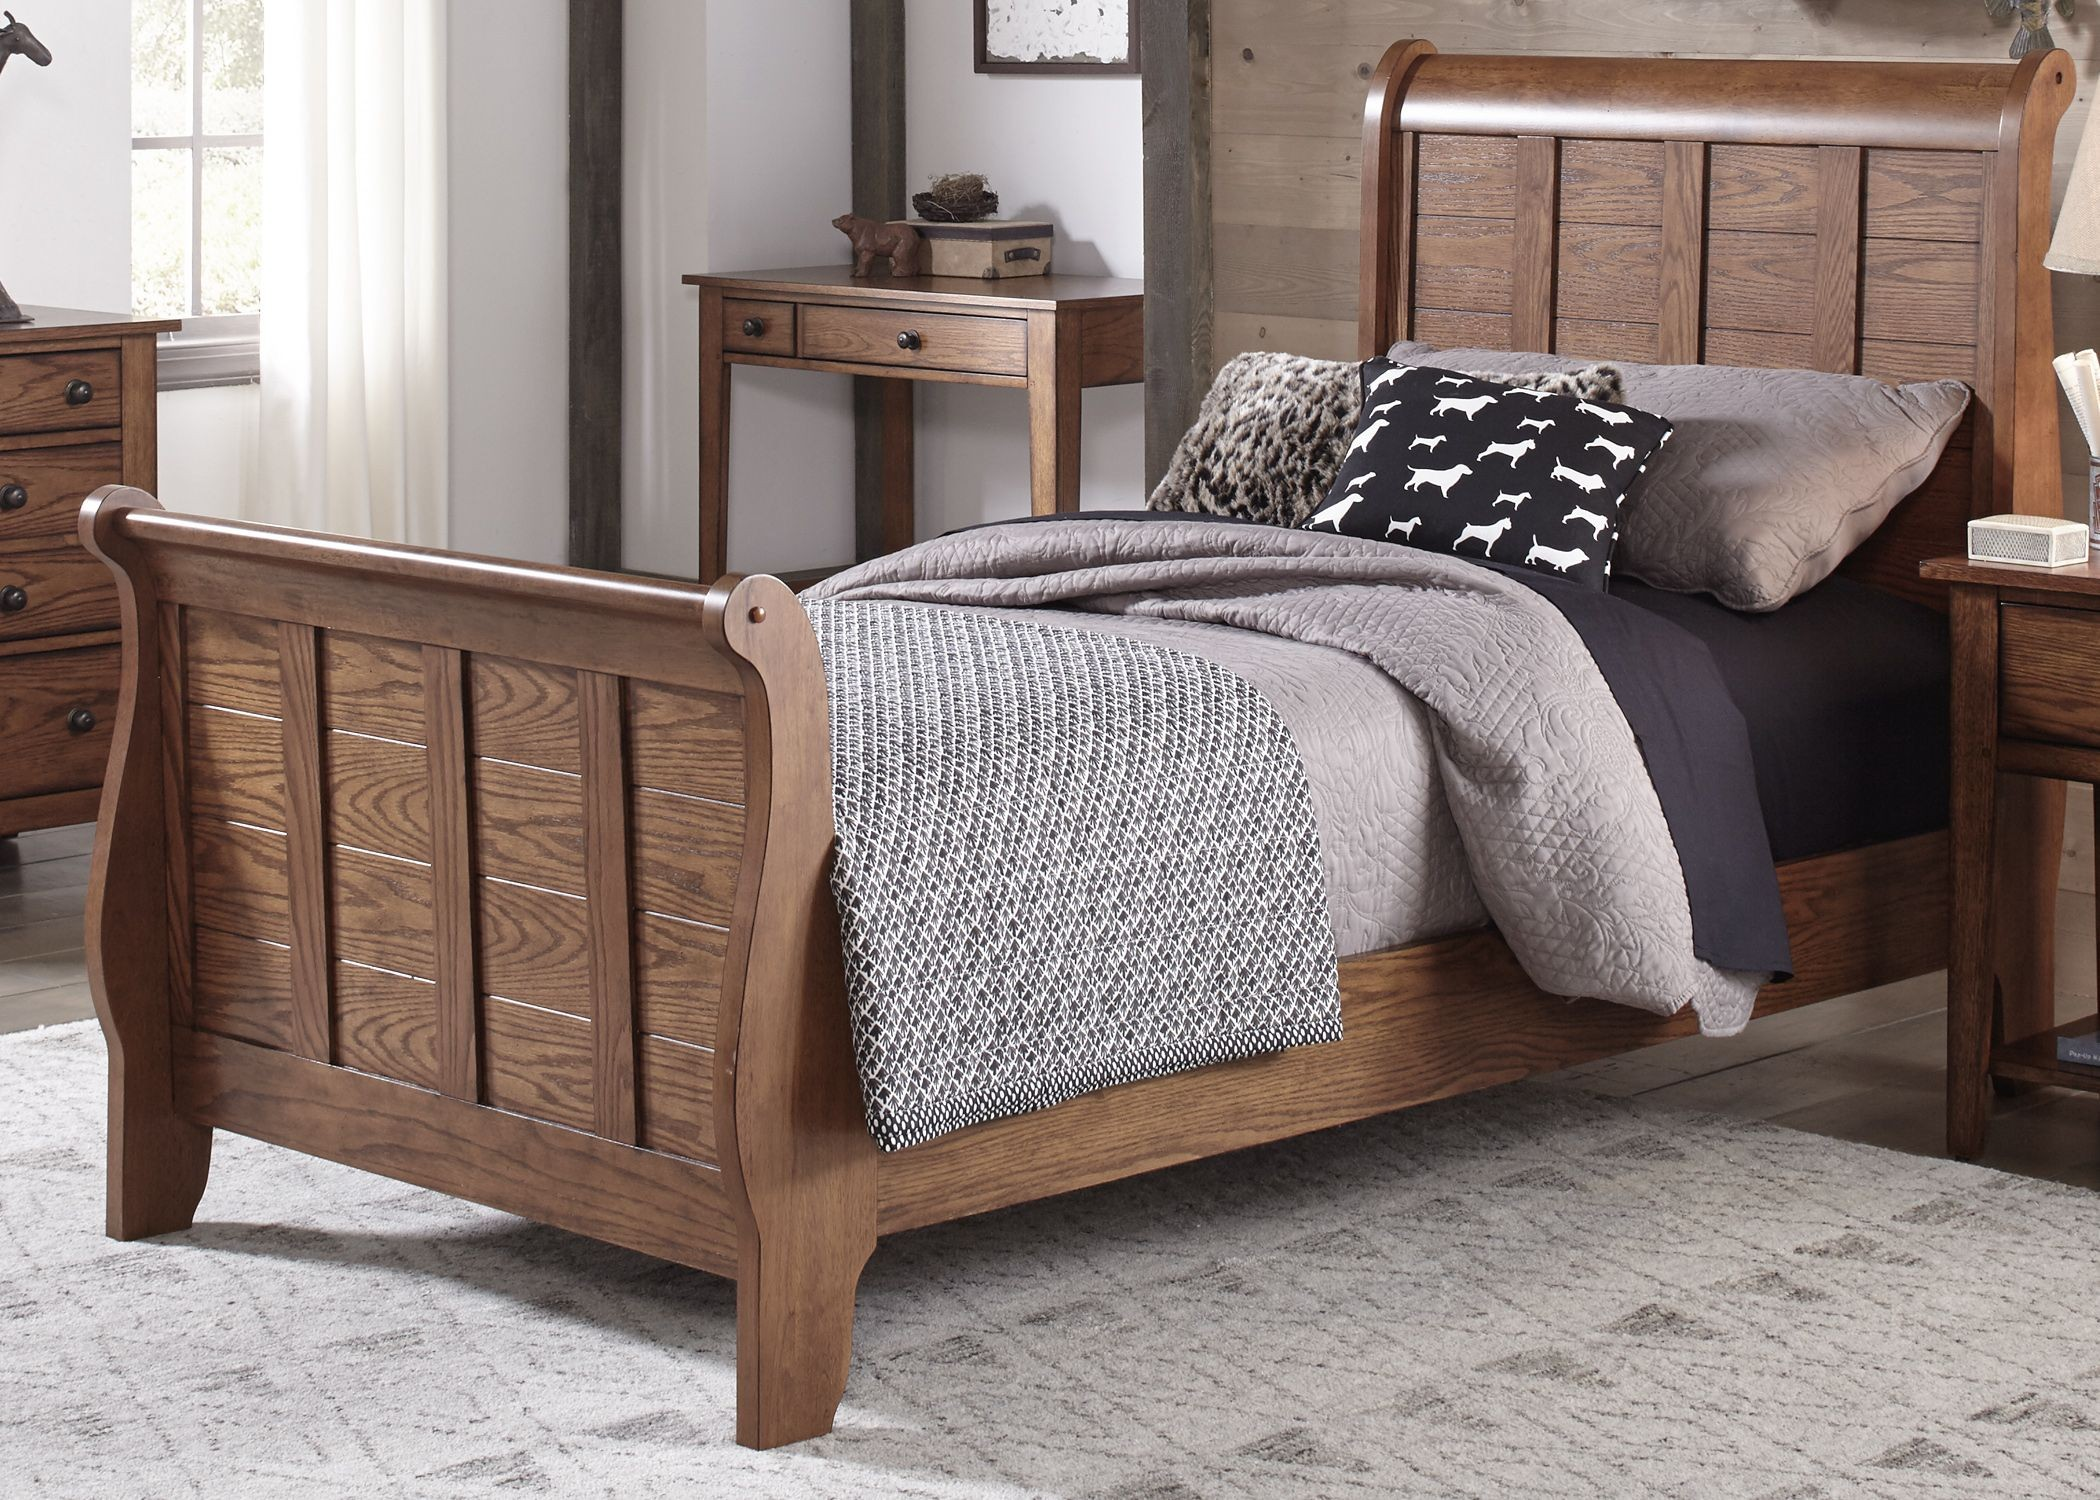 queen size wood bed frames home office computer chair unfinished 2100x1500 grandpas cabin aged oak full sleigh bed 175 ybr fsl liberty photo 7f5e4c most